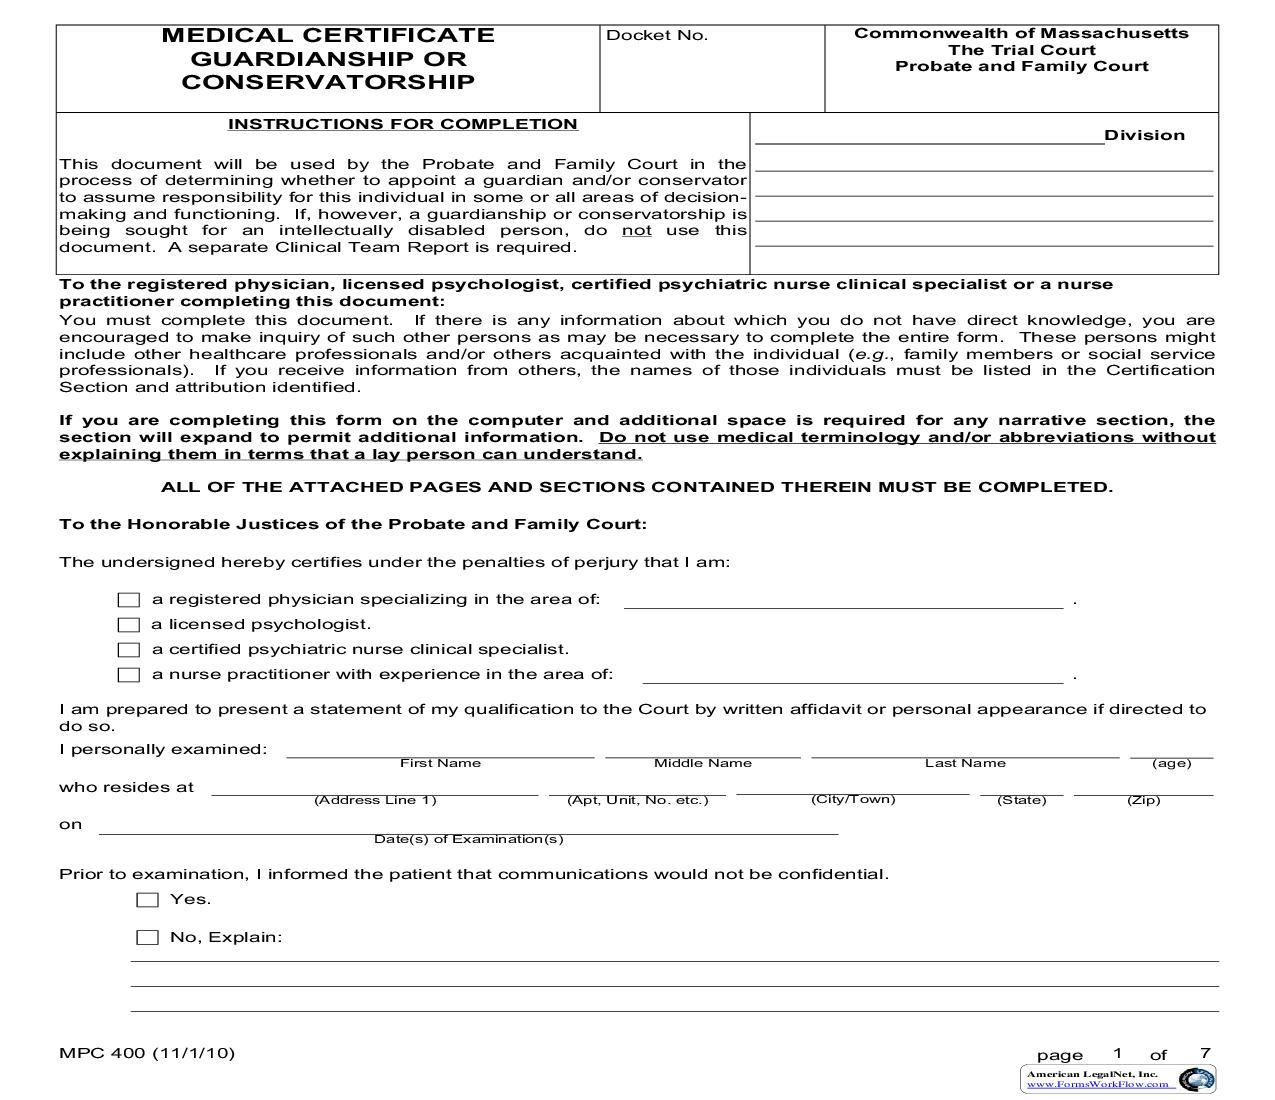 Medical Certificate For Guardianship-Conservatorship {MPC 400} | Pdf Fpdf Doc Docx | Massachusetts